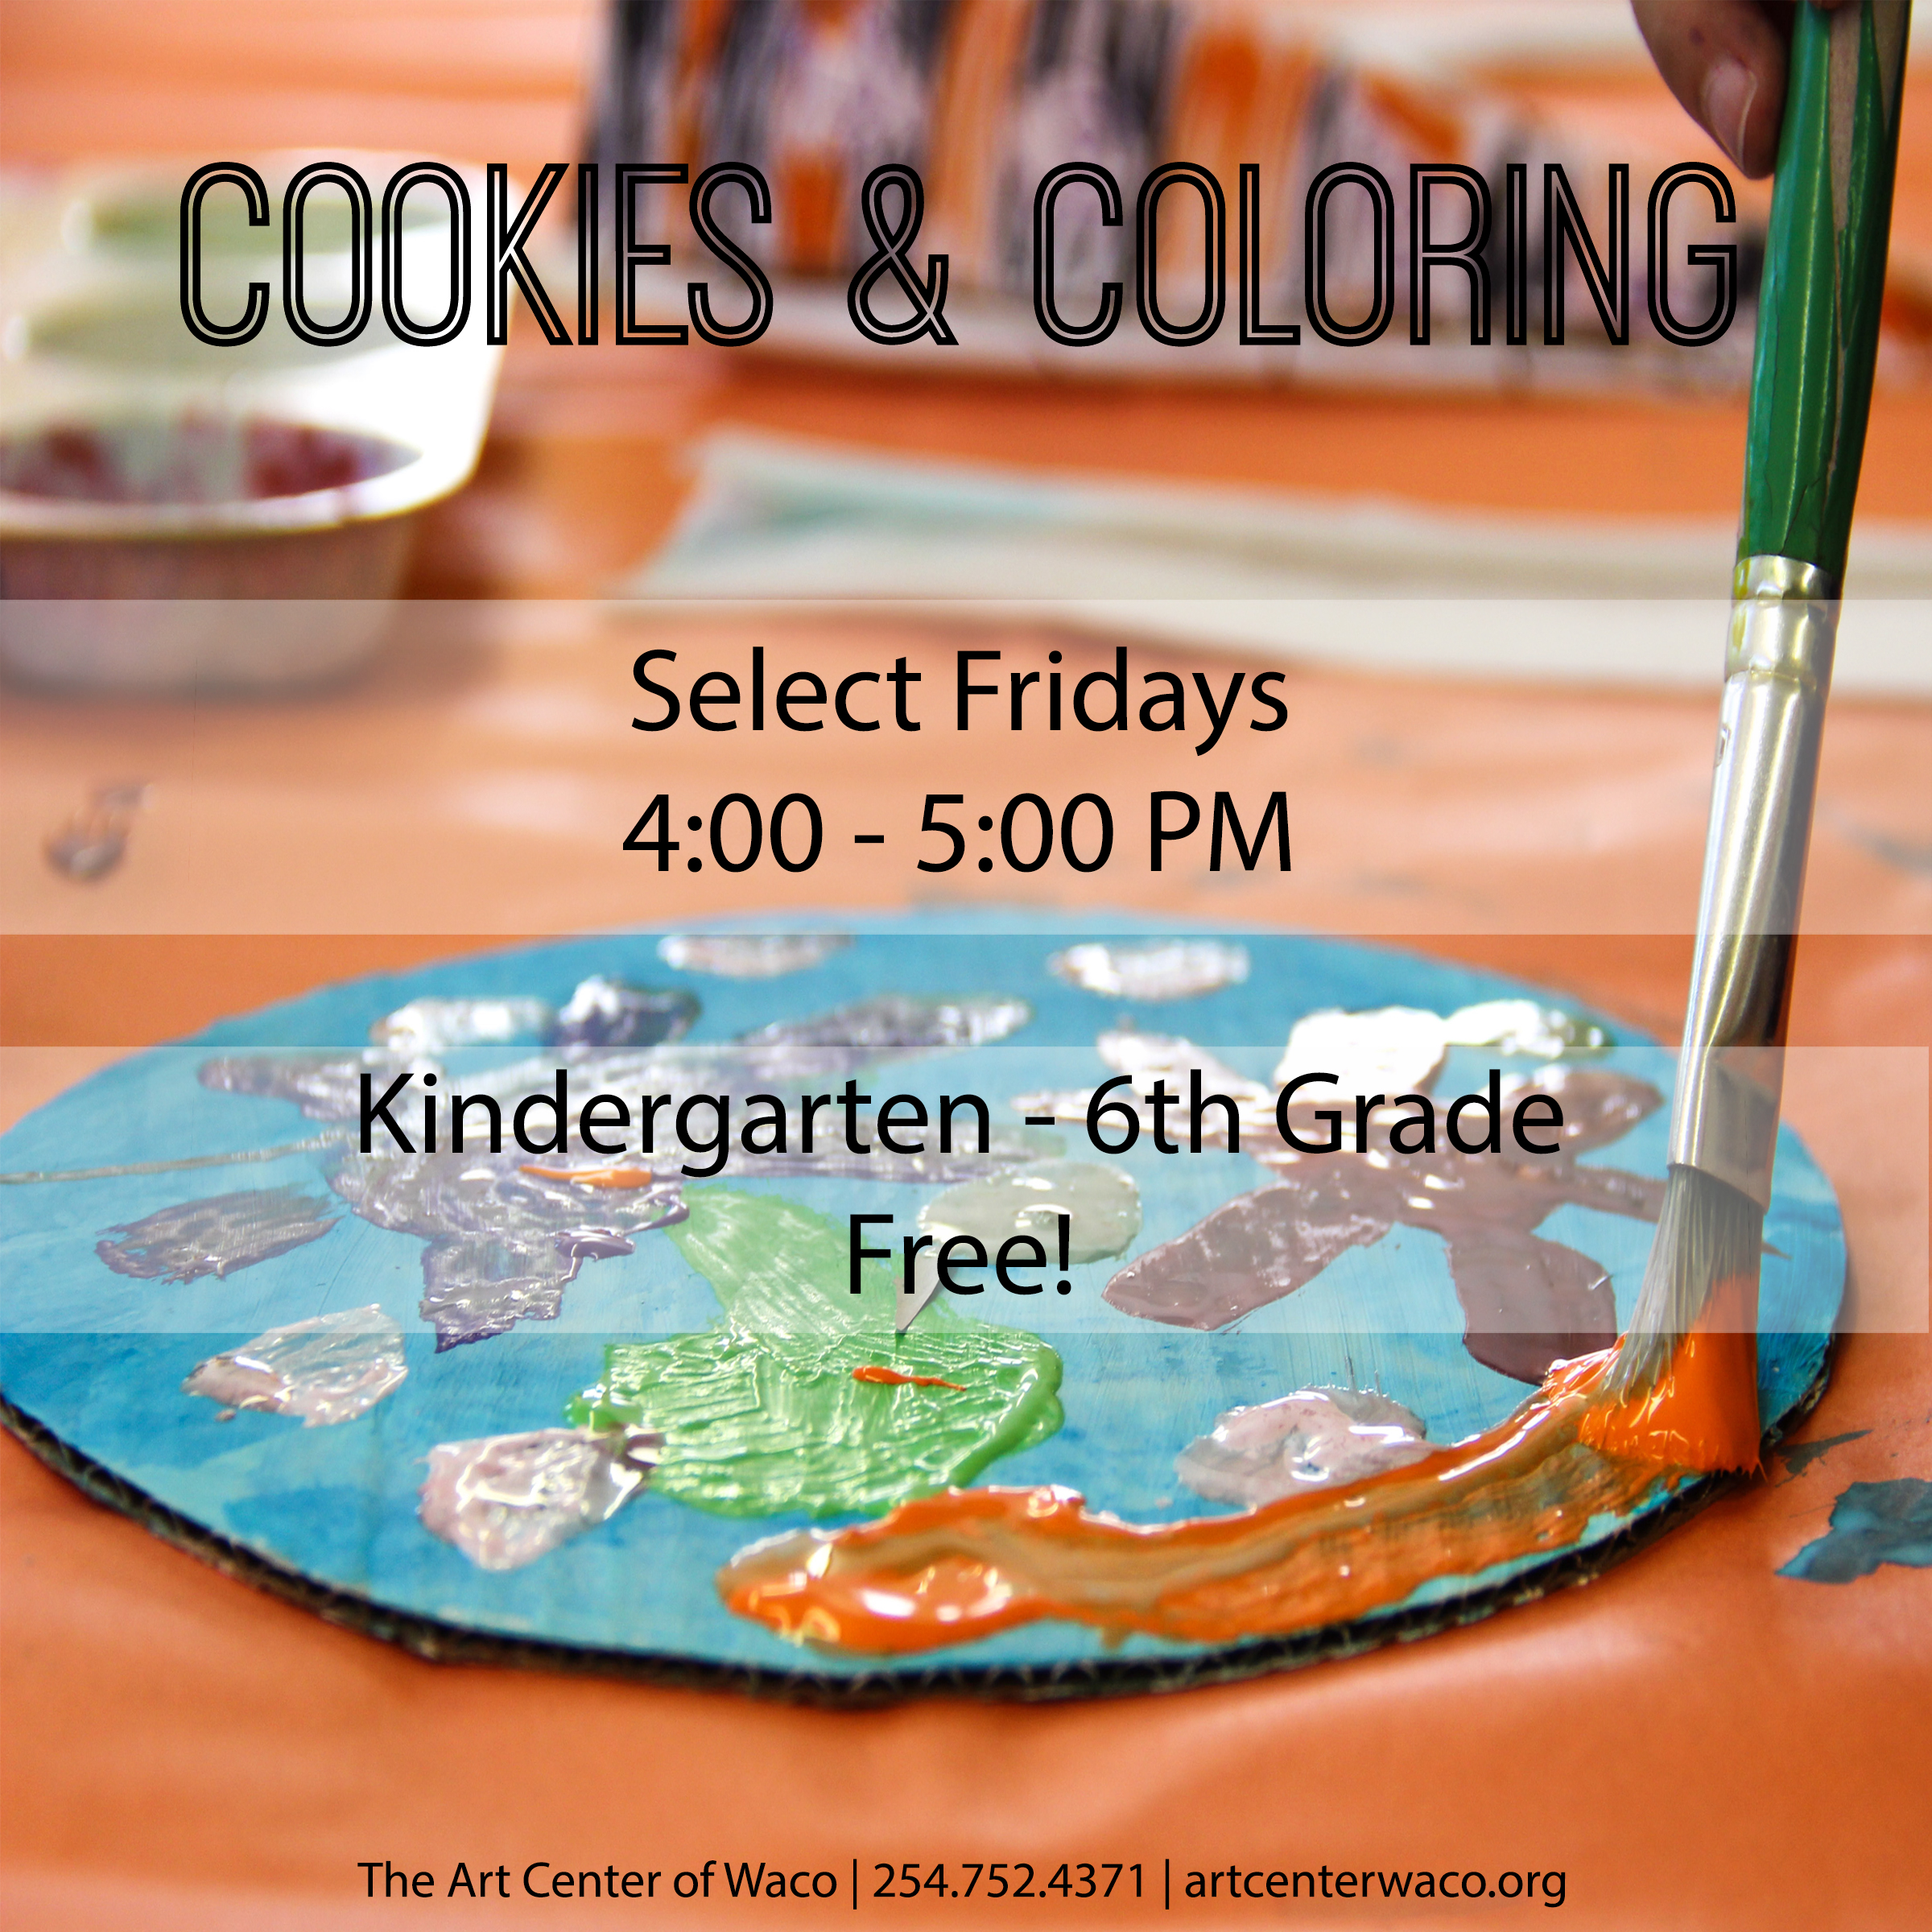 Cookies & Coloring Free Class - The Art Center of Waco